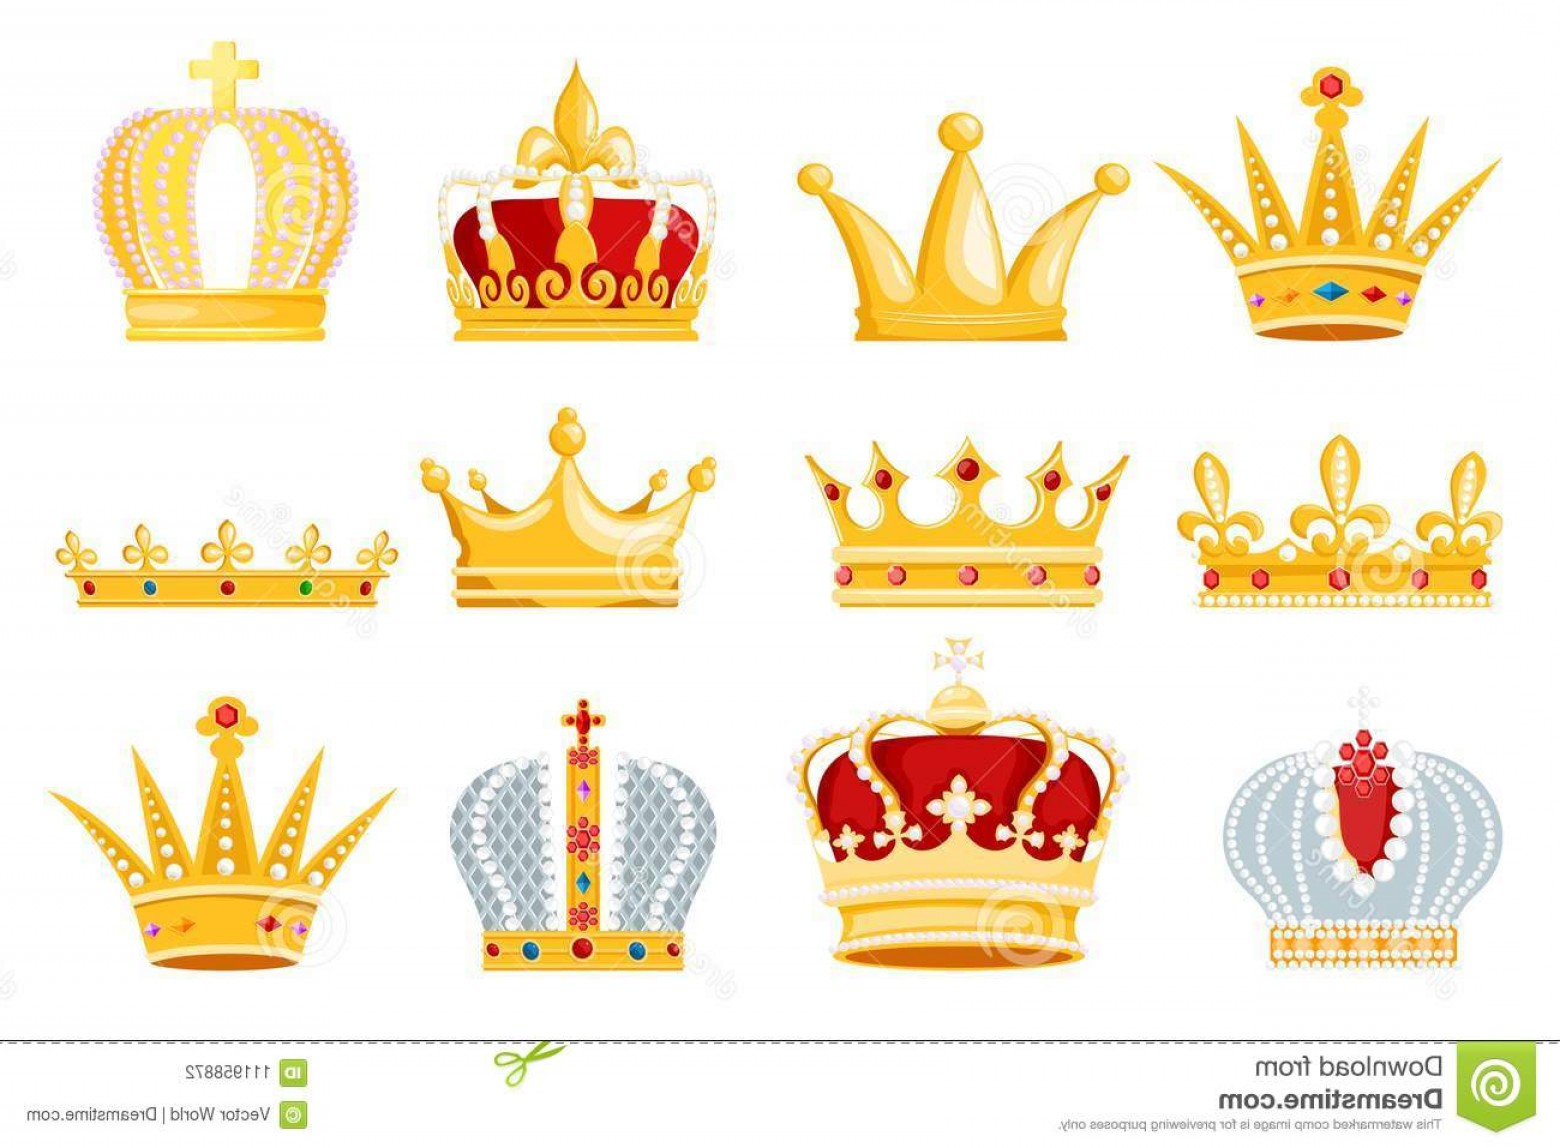 Silver Prince Vector: Crown Vector Golden Royal Jewelry Symbol King Queen Princess Illustration Sign Crowning Prince Authority Set Jeweles Image